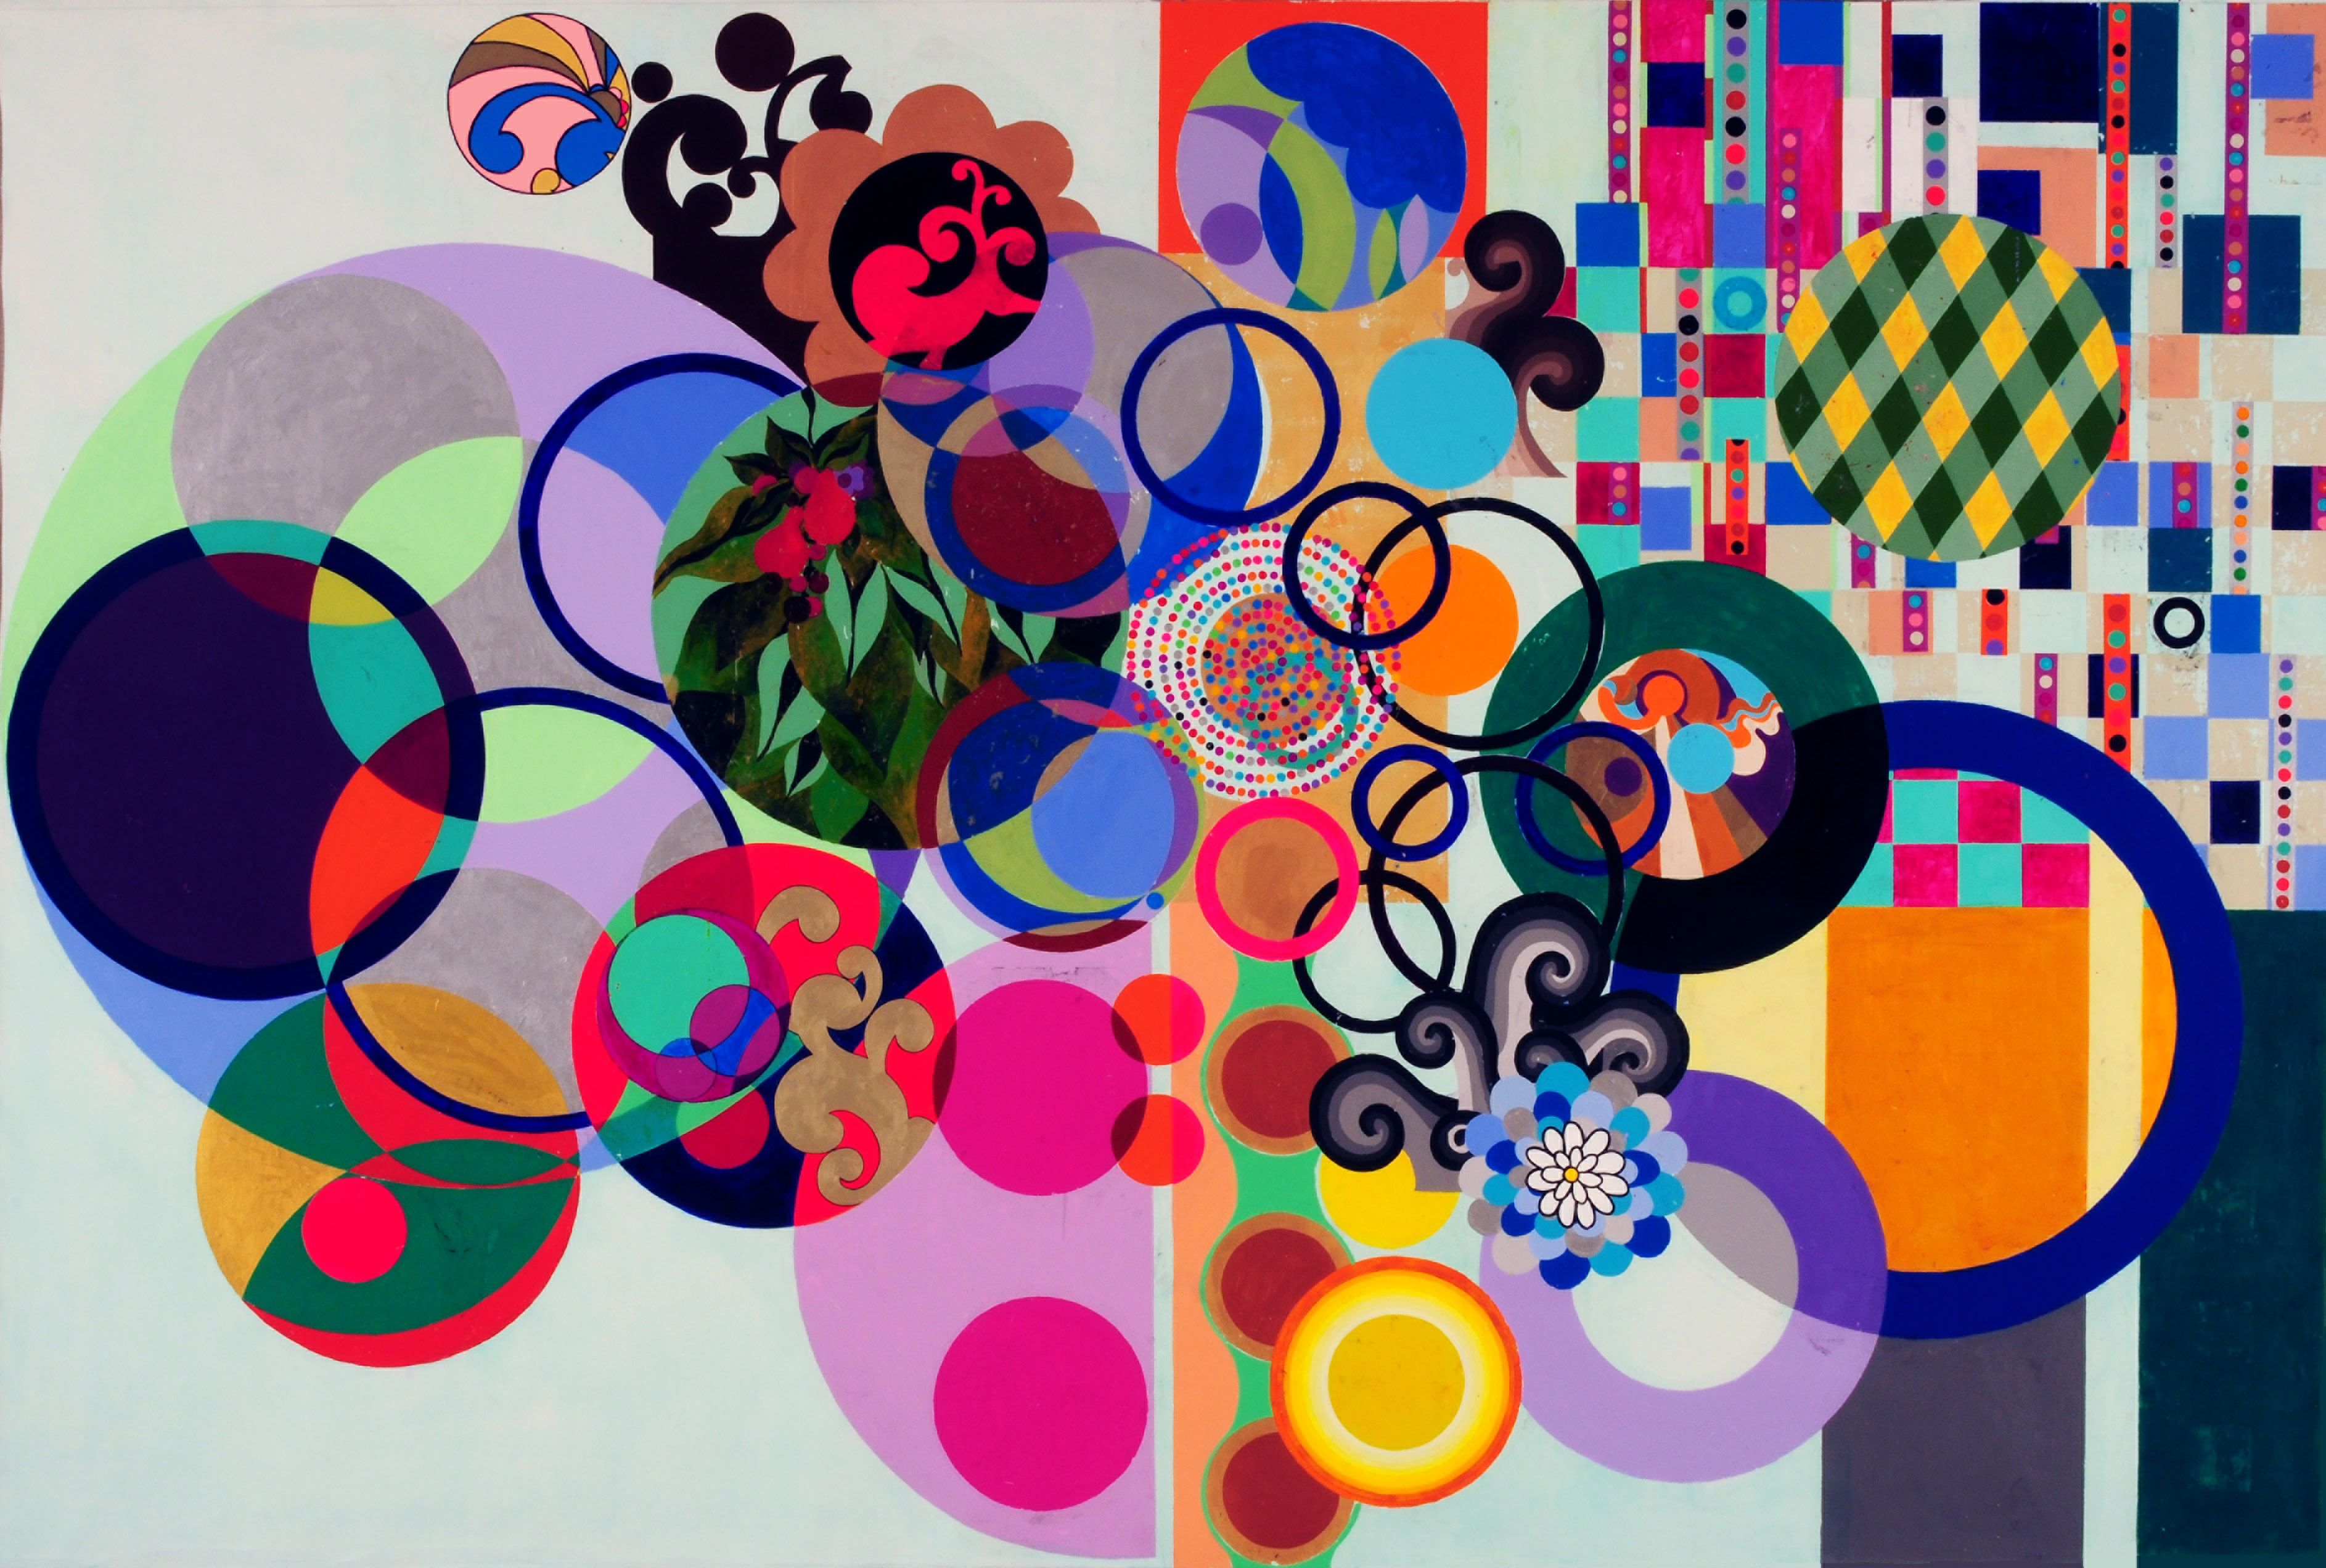 BEATRIZ MILHAZES - (born 1960) is a Brazilian artist. Milhazes is known for her work juxtaposing Brazilian cultural imagery and references to western Modernist painting.